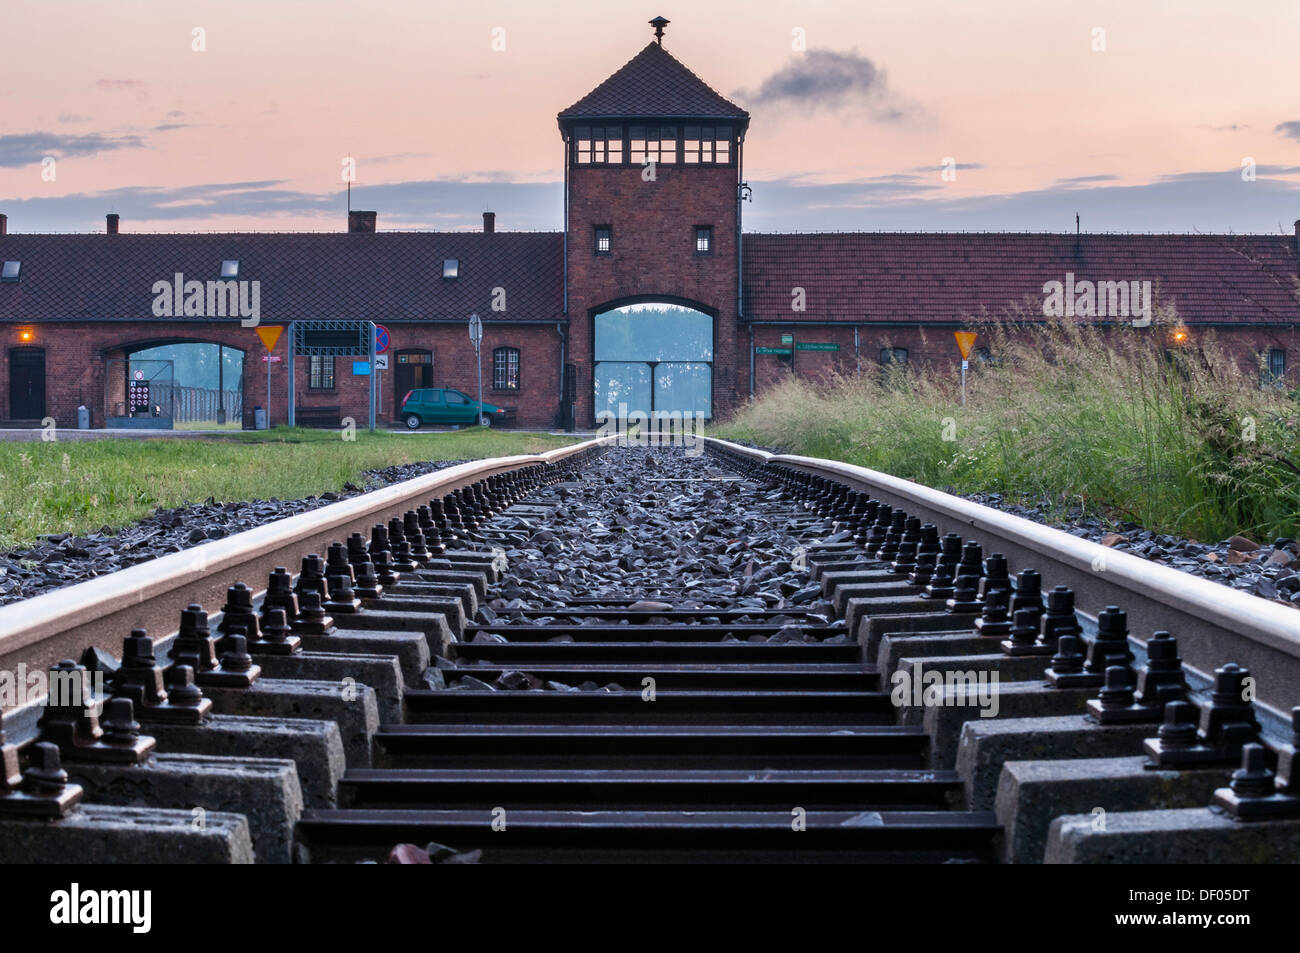 Rail tracks and entrance gate to the Auschwitz-Birkenau concentration camp, Auschwitz, Lesser Poland, Poland, Europe - Stock Image